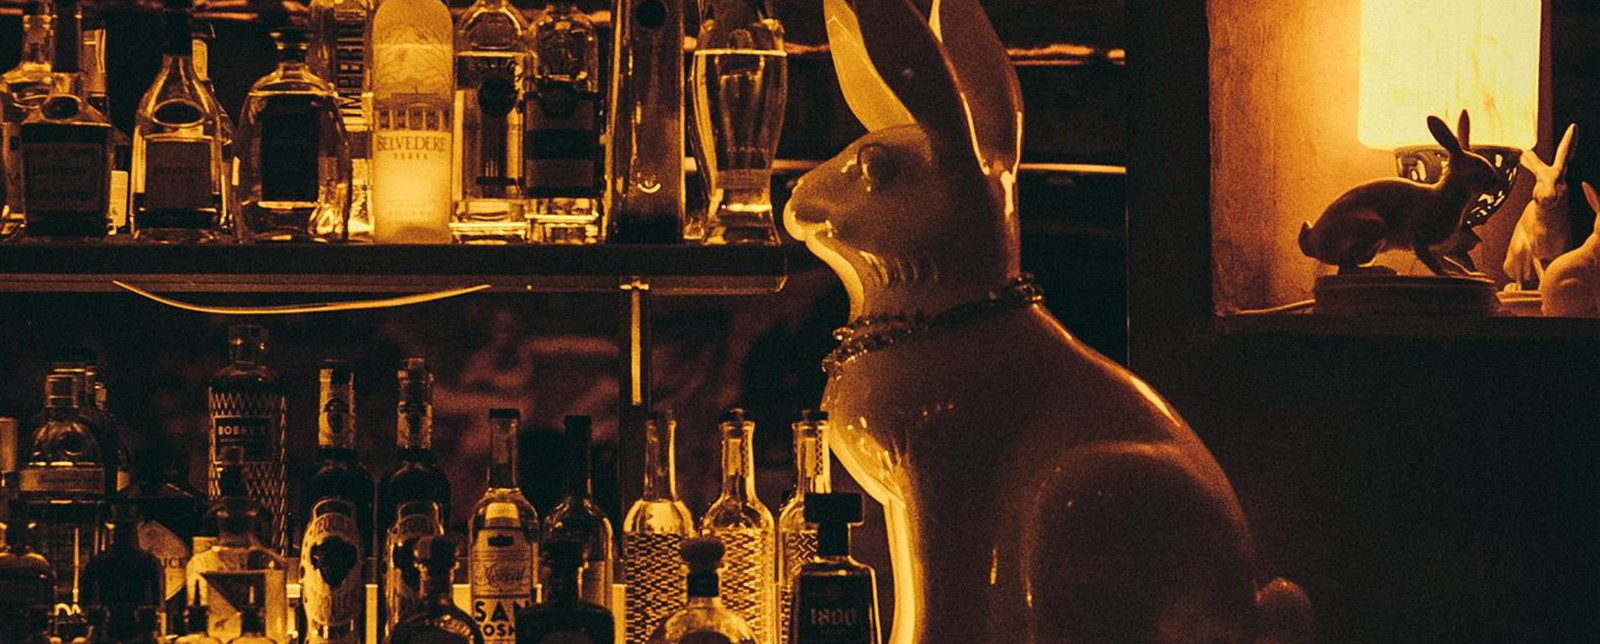 Rabbit statue and spirit bottles at Her Majesty the Rabbit bar